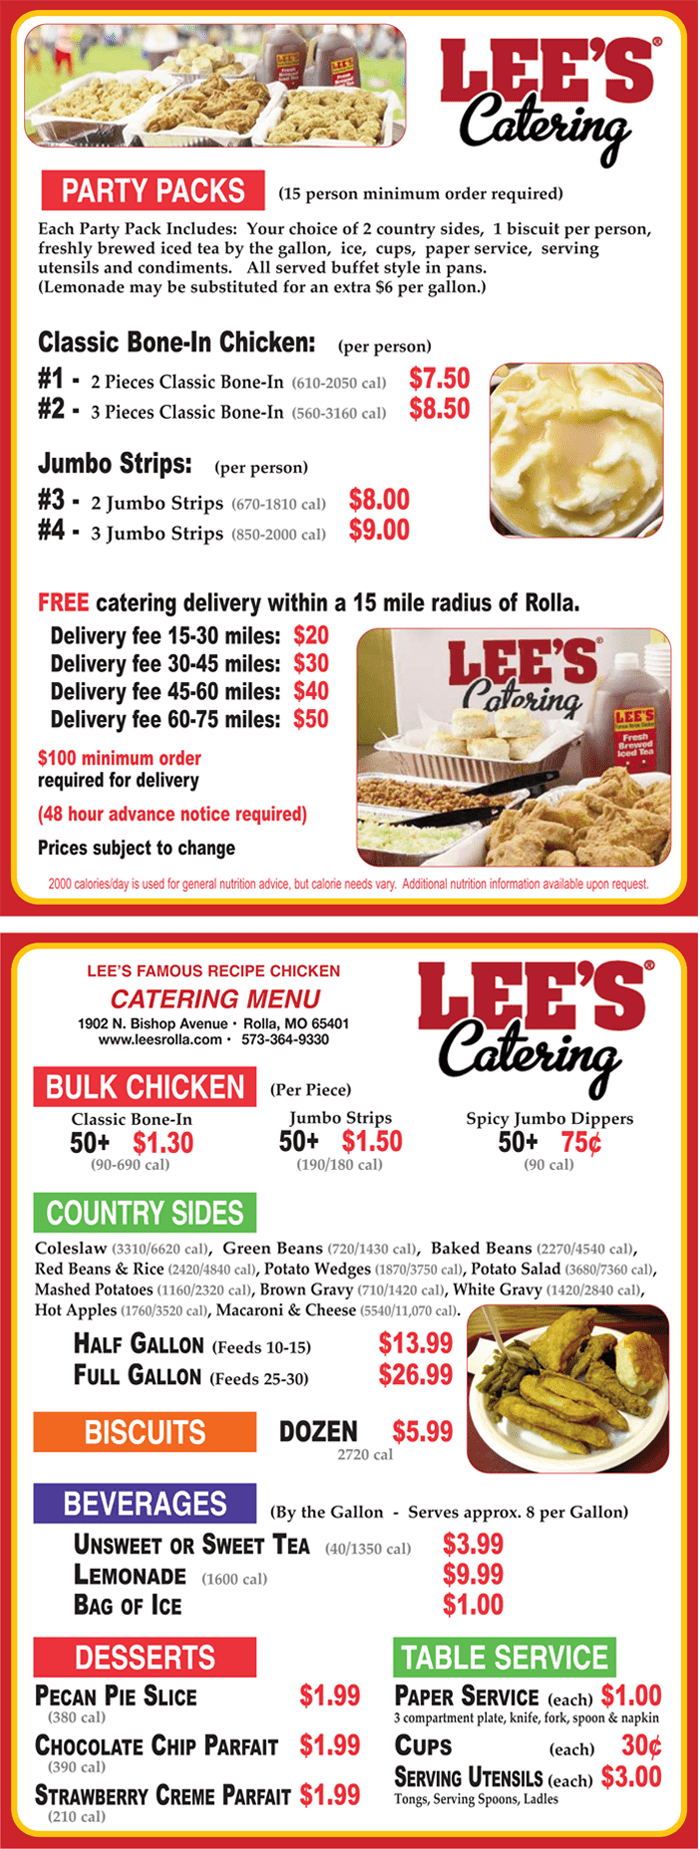 Click Here To Use Our Online Catering Request Form.